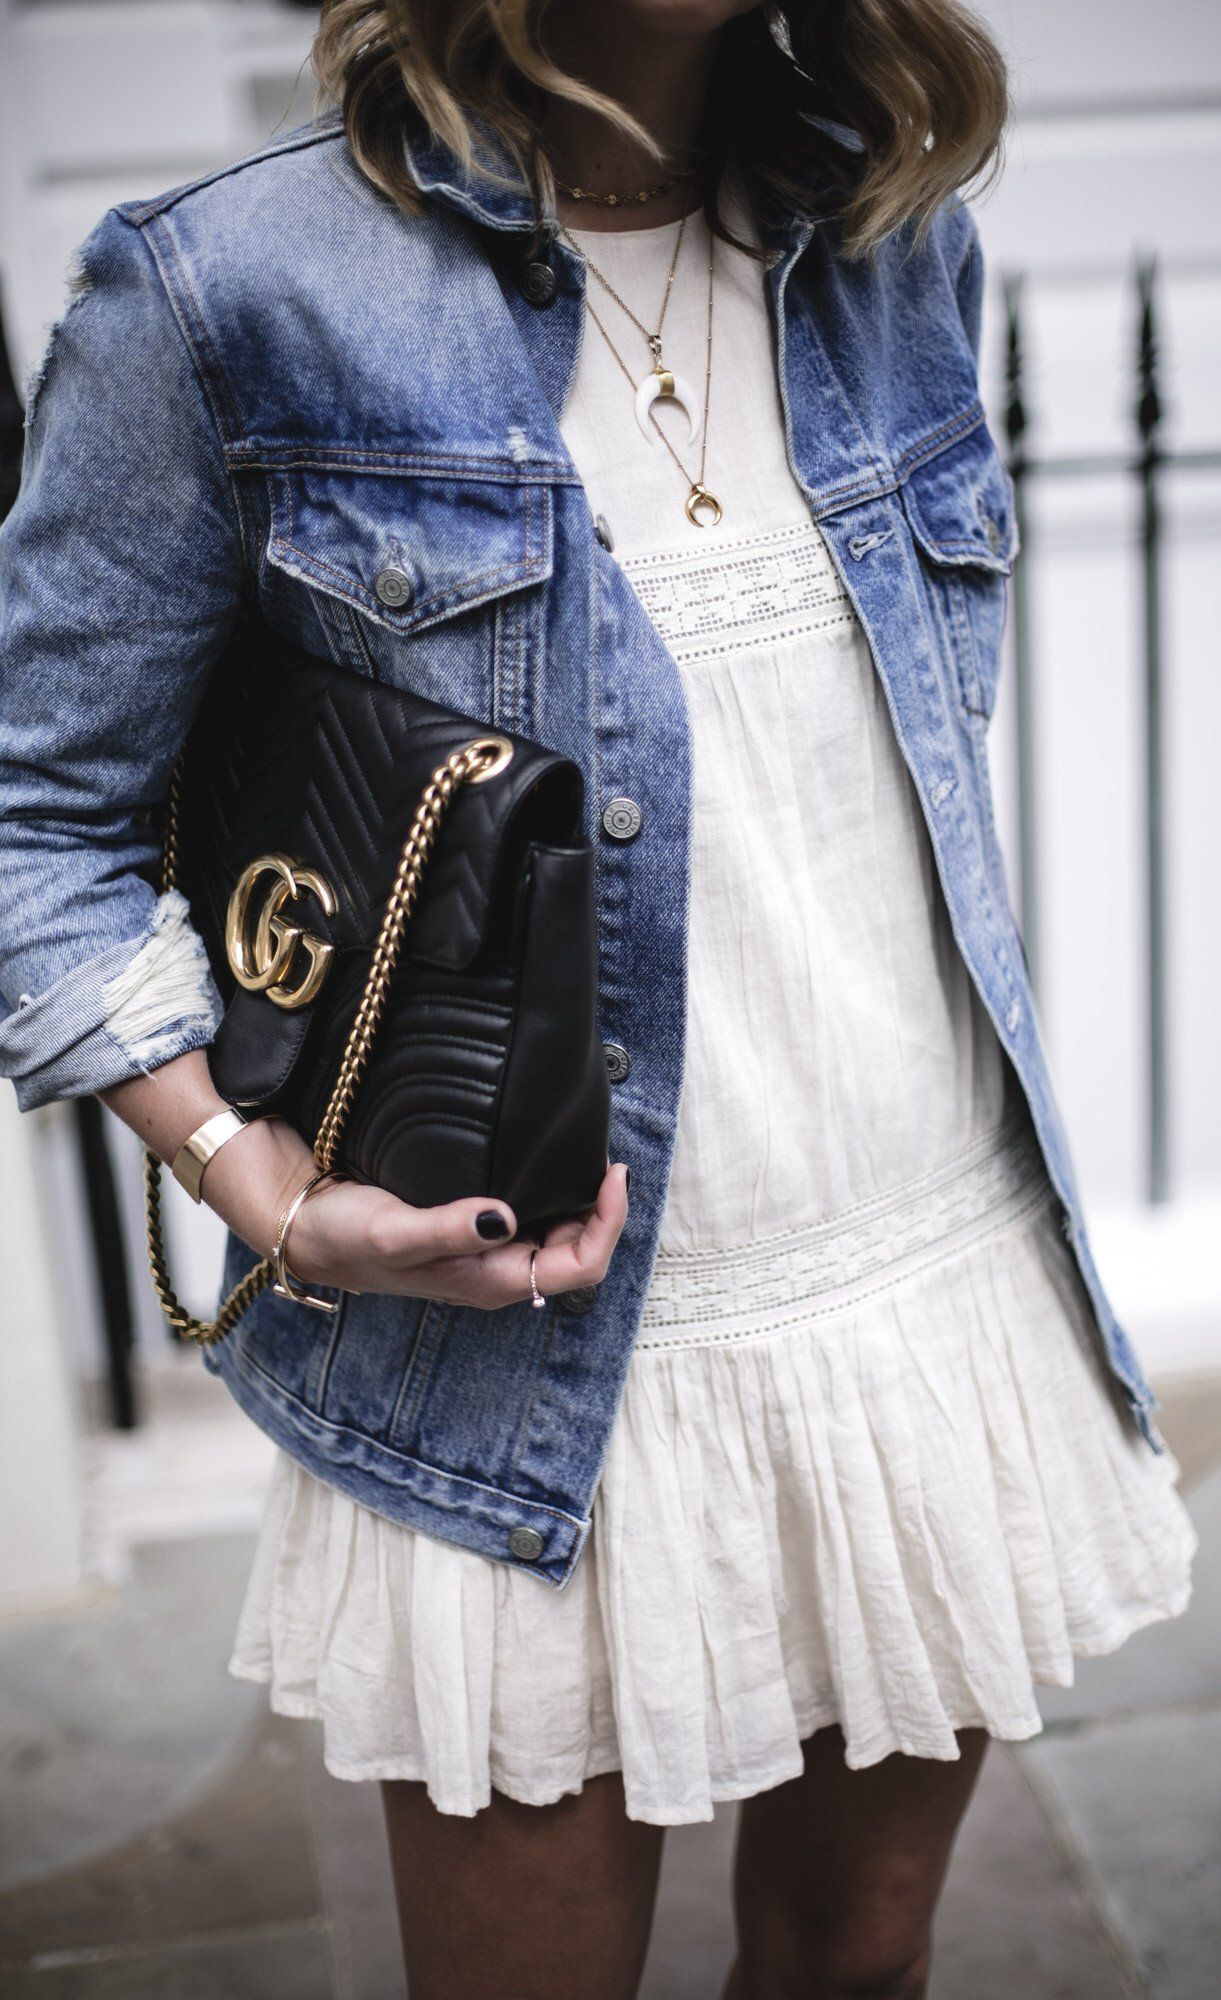 Summer Outfits Denim Jacket White Tulle Dress Elegant Summer Outfits Denim Jacket With Dress White Summer Outfits [ 2000 x 1221 Pixel ]